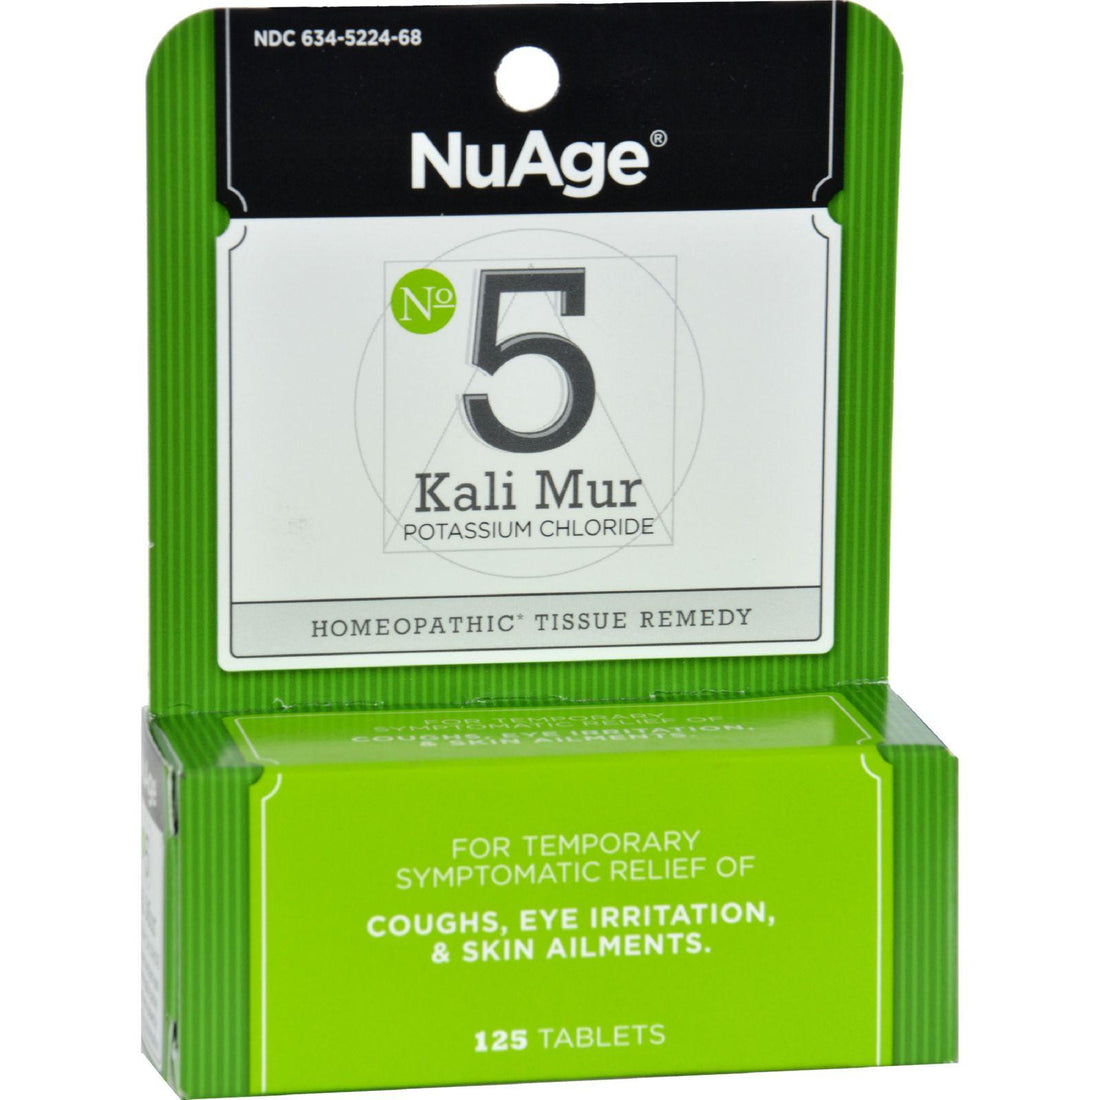 Mother Mantis: Hyland's Nuage No 5 Kali Mur - 125 Tablets Hyland's